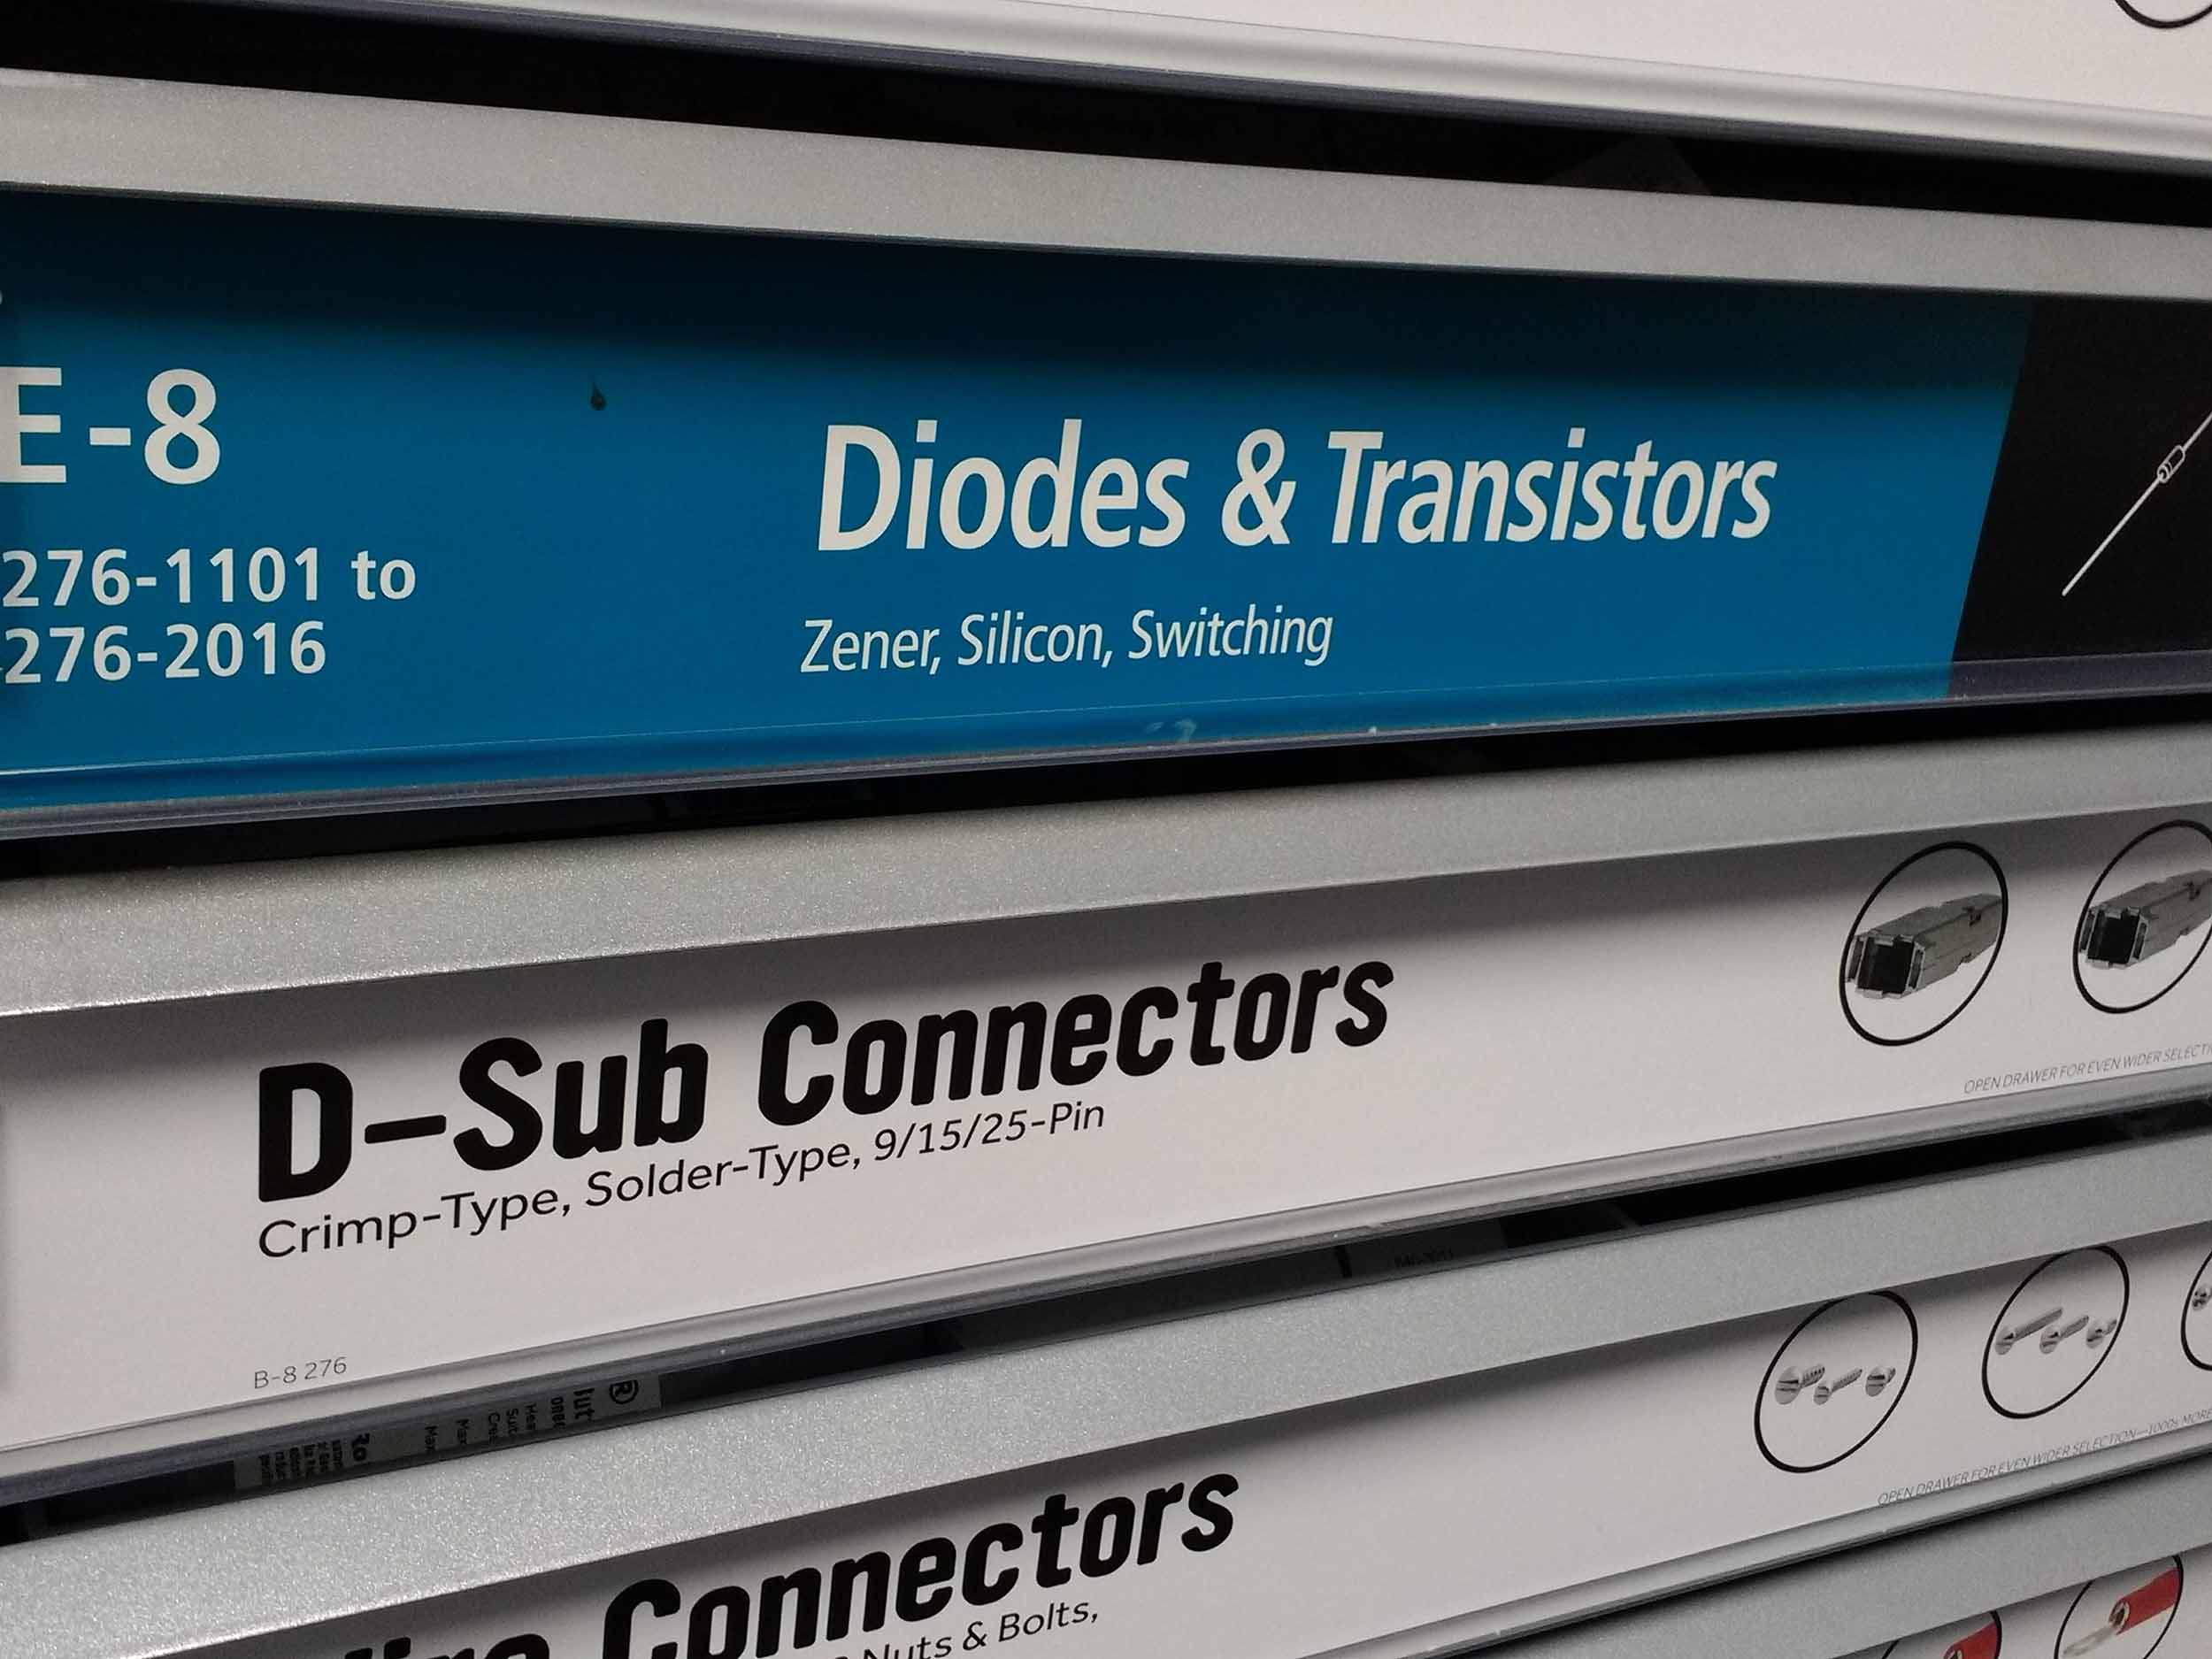 Drawers of diodes & transistors as well as d-sub connectors.